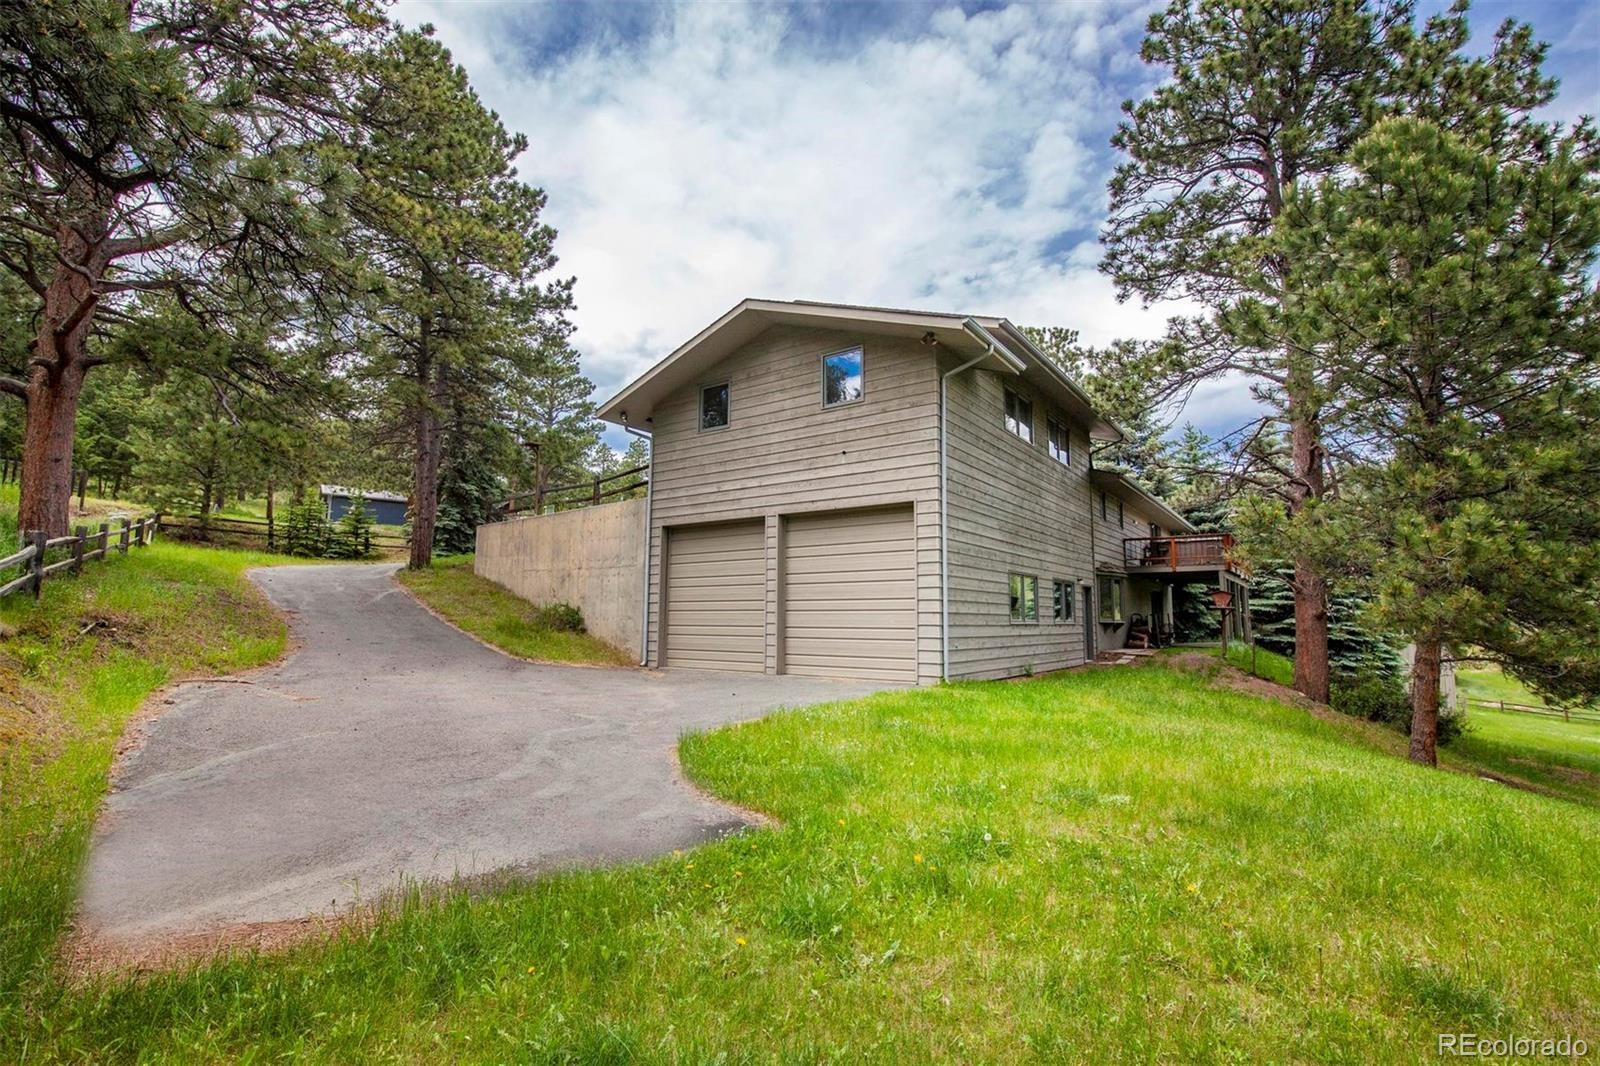 MLS# 5479240 - 6 - 5002 S Syndt Road, Evergreen, CO 80439